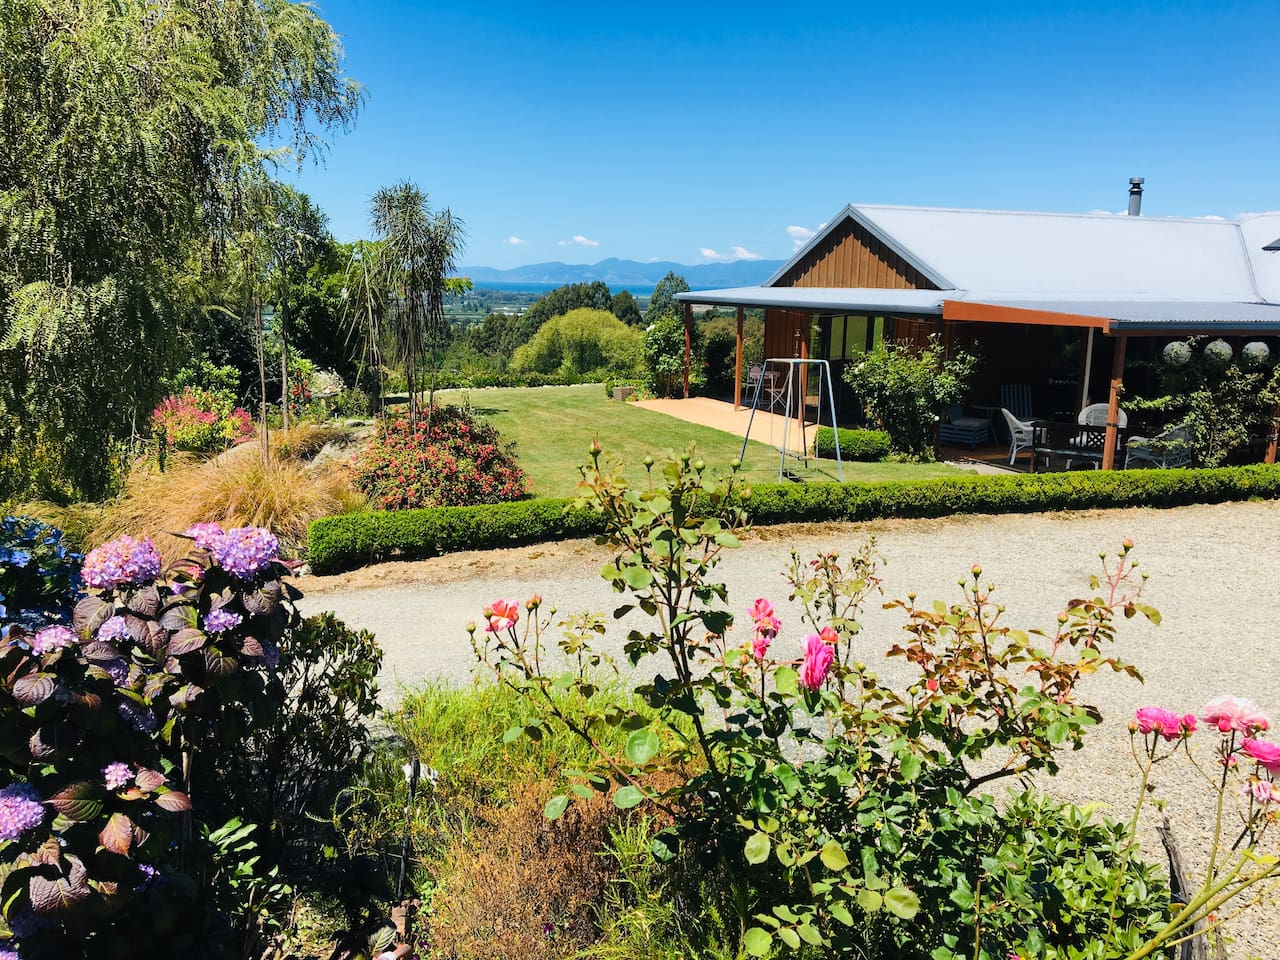 A quiet rural setting with expansive views from an elevated site overlooking rural plains of Riwaka and out across Tasman Bay. The suite is set within a private courtyard surrounded by colourful gardens